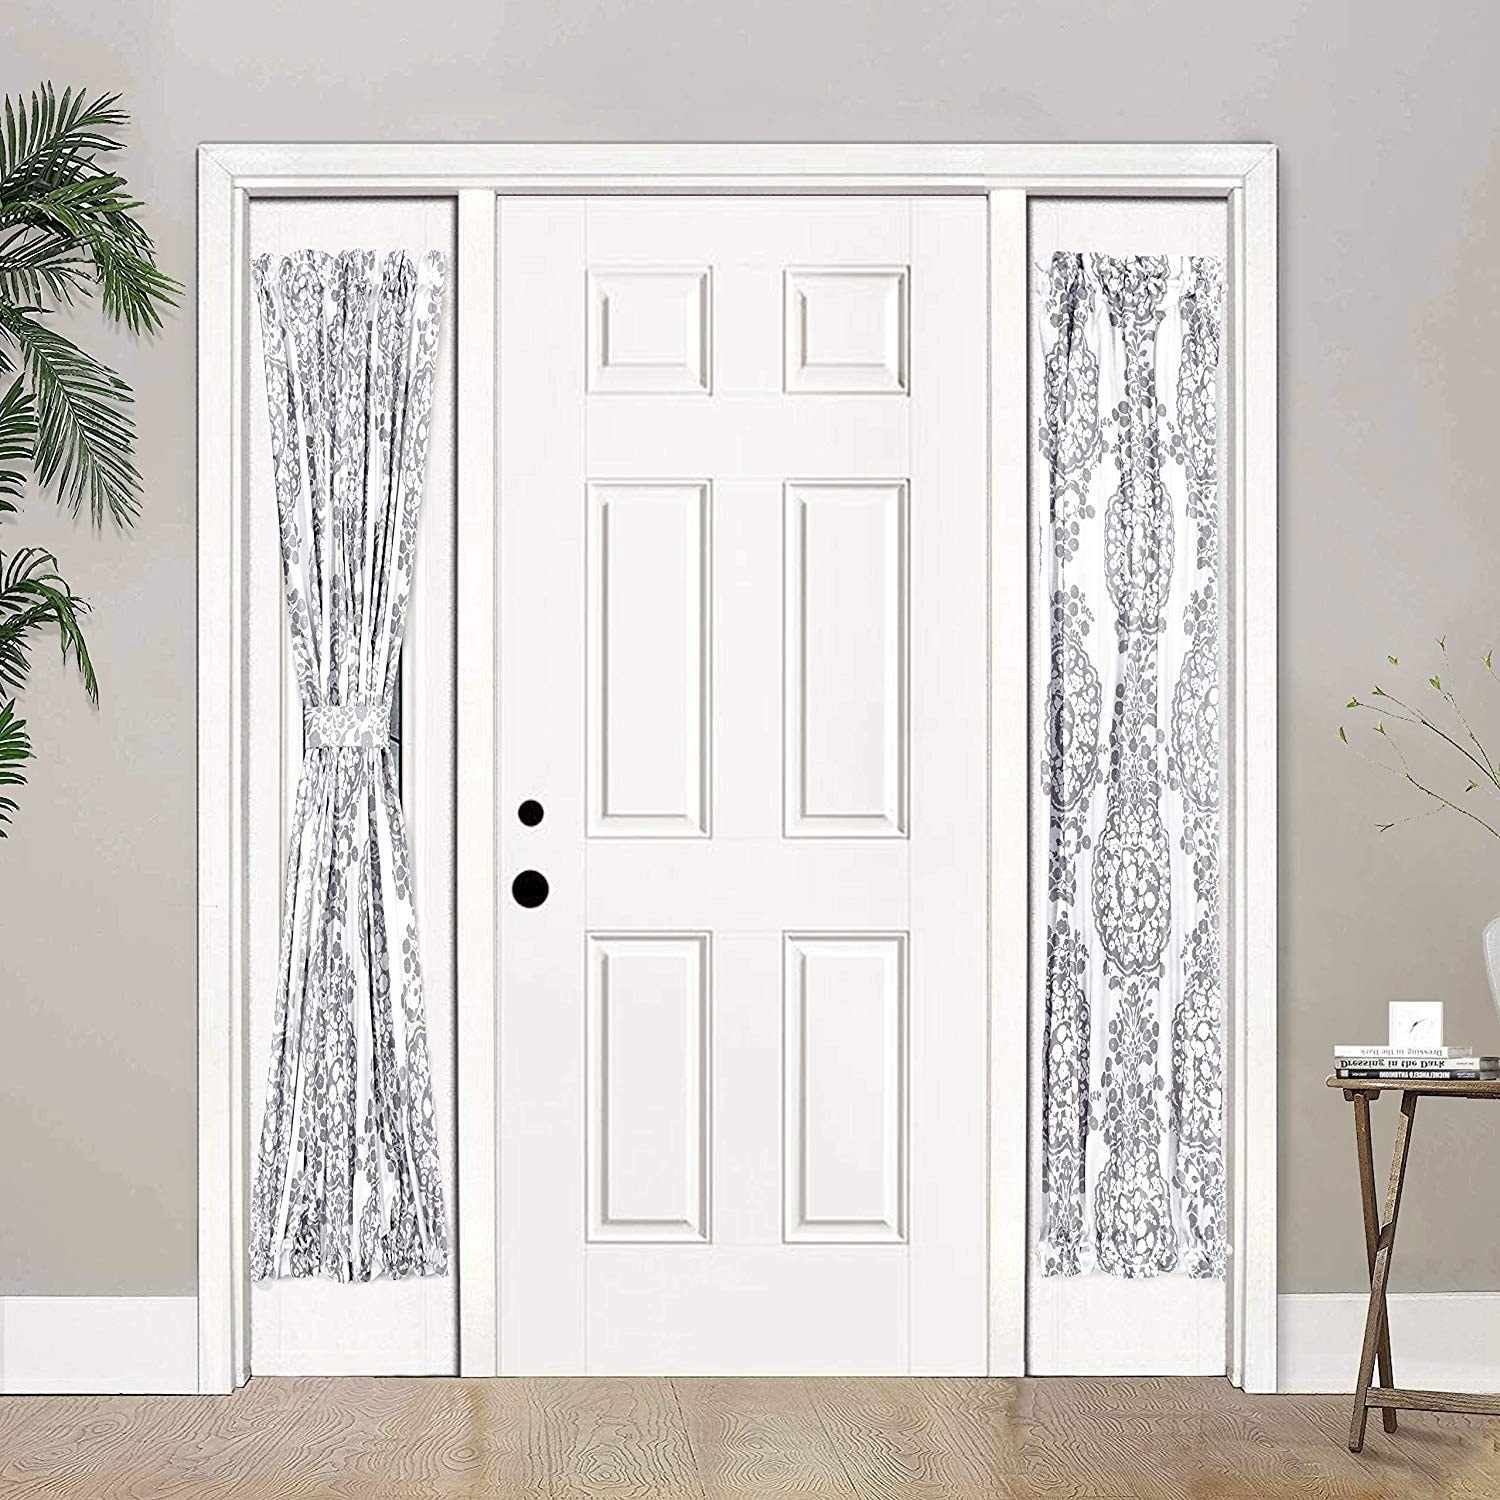 Ordinaire Shop DriftAway Samantha Rod Pocket Room Darkening Patio French Door Single  Curtain Panel   On Sale   Free Shipping On Orders Over $45   Overstock    25449058